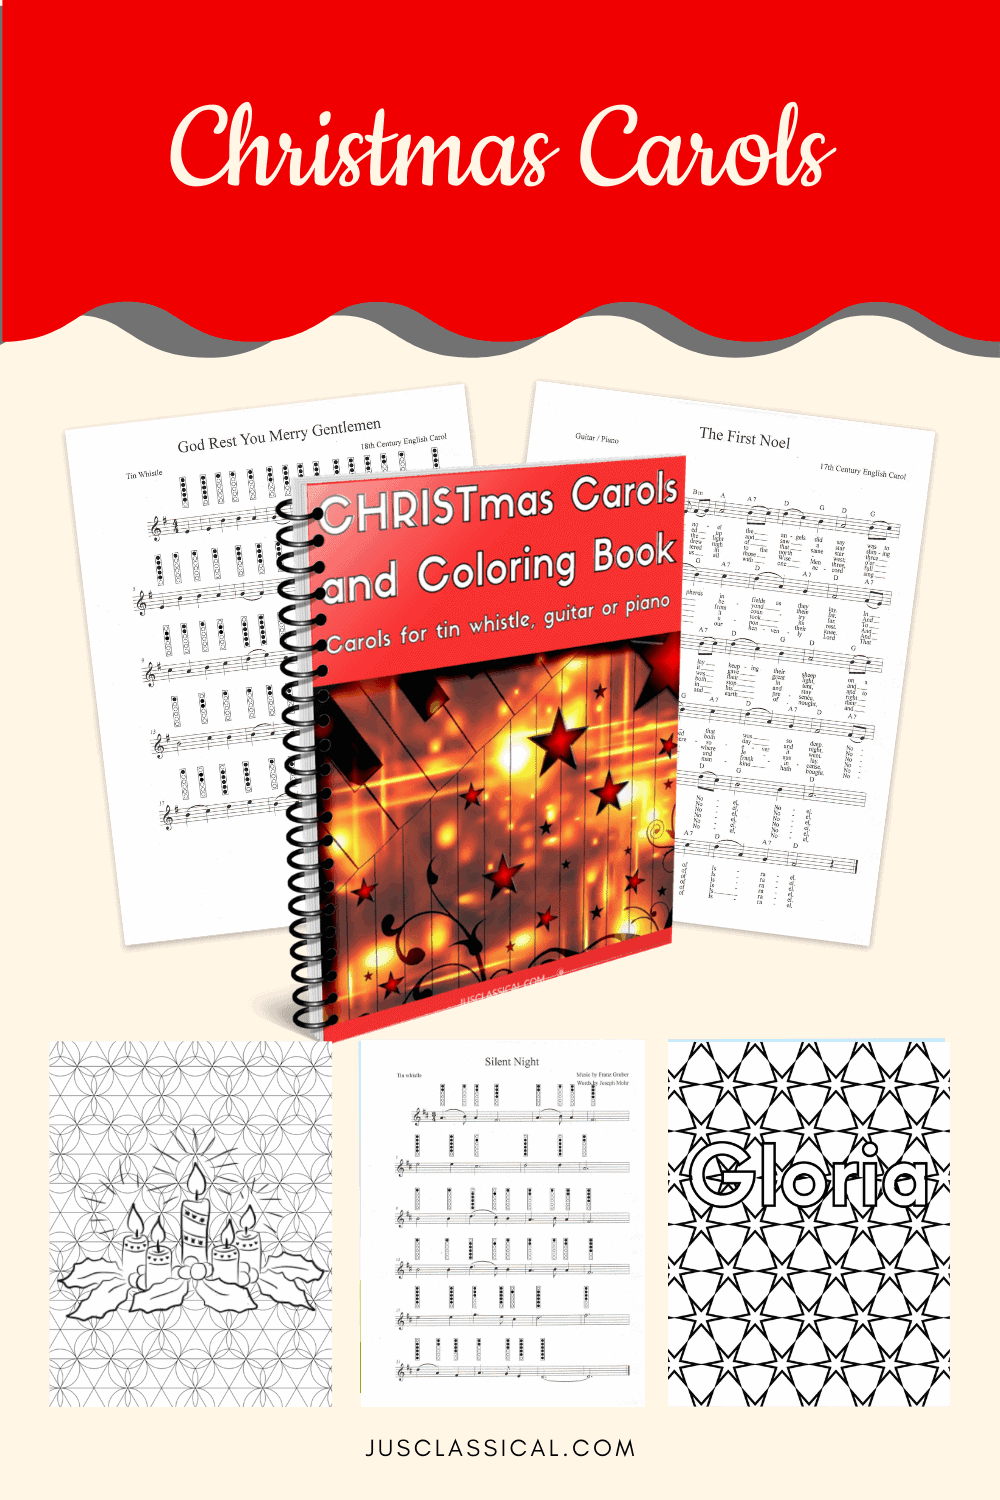 Image of cover with spiral binding and page previews of Christmas Carols and Coloring Book.